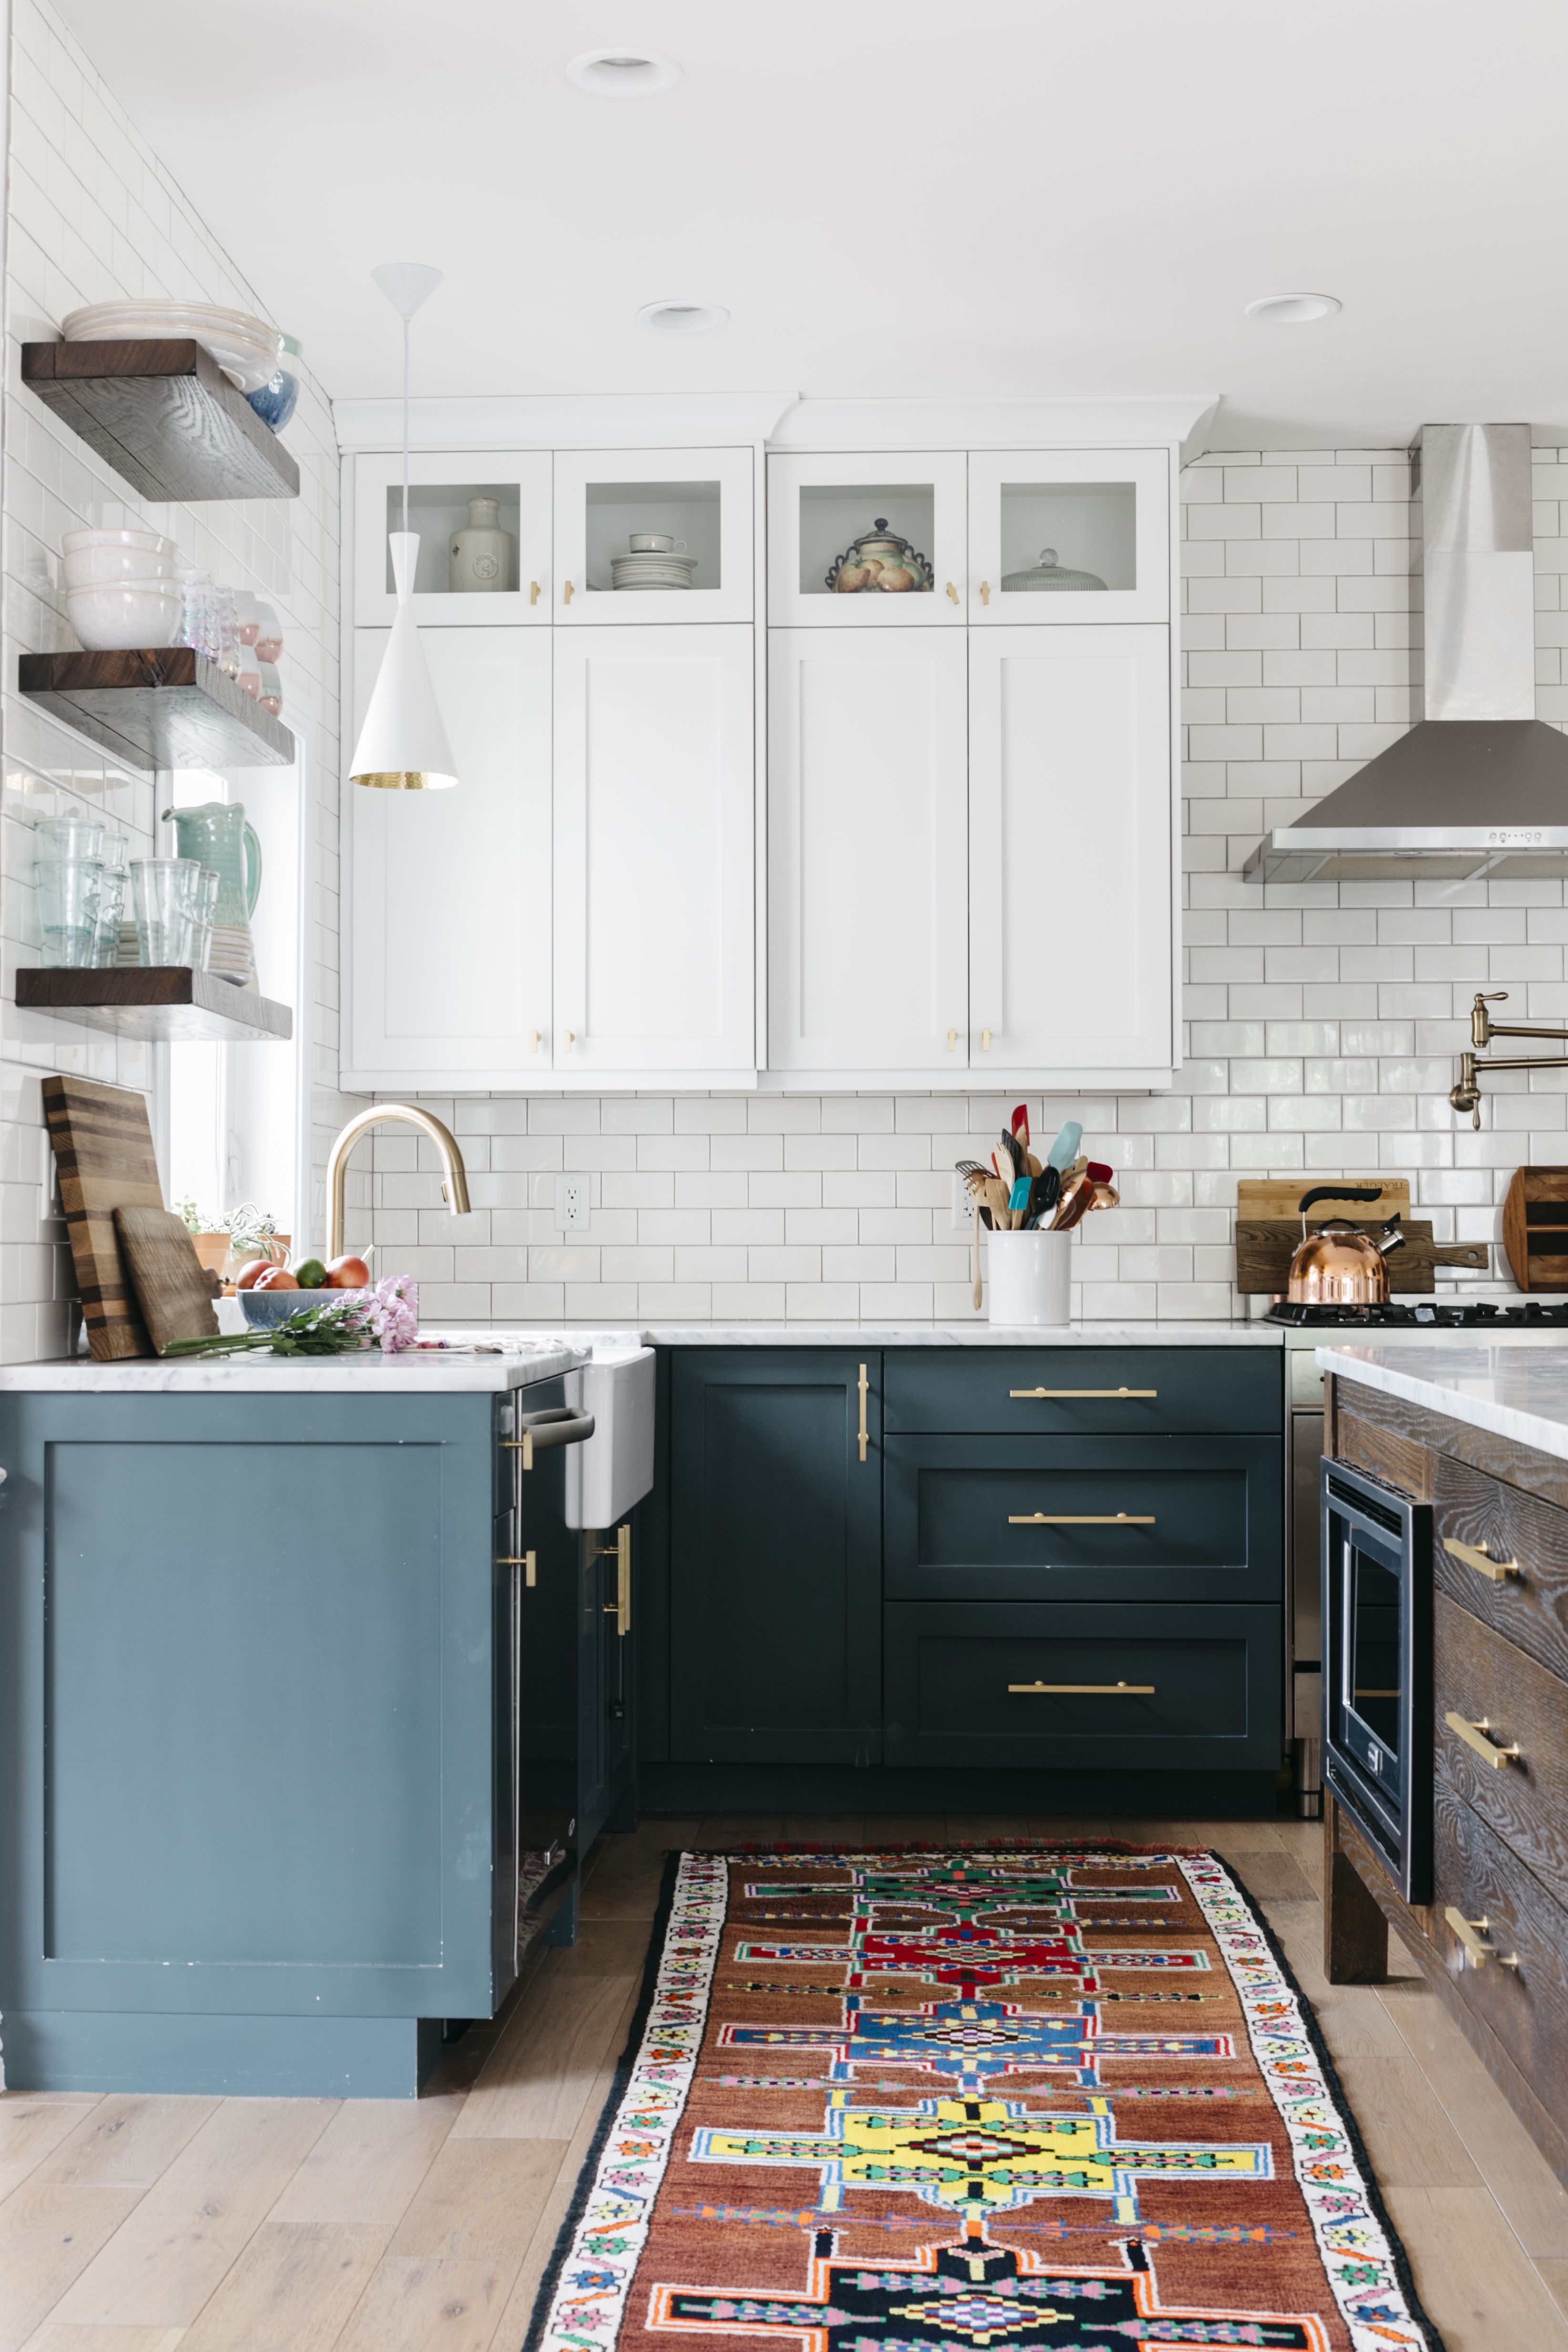 anthropologie kitchen design inspiration kitchen and dining in rh pinterest com kitchen design inspiration pinterest kitchen designing